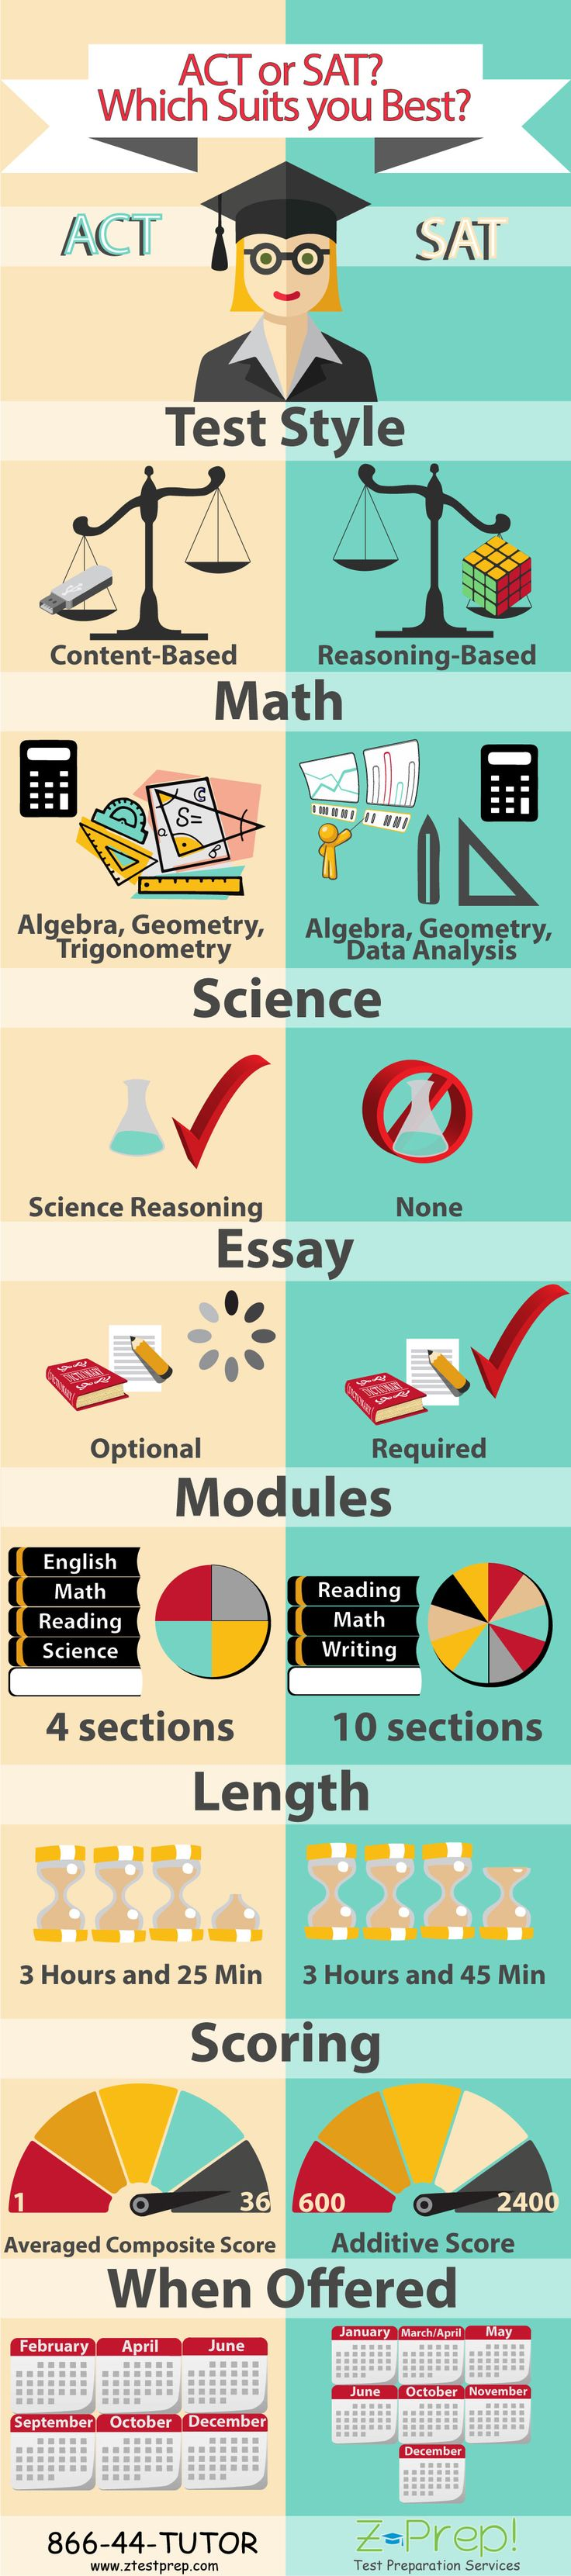 sat vs act differences in an infographic education infographics pinterest infographic. Black Bedroom Furniture Sets. Home Design Ideas